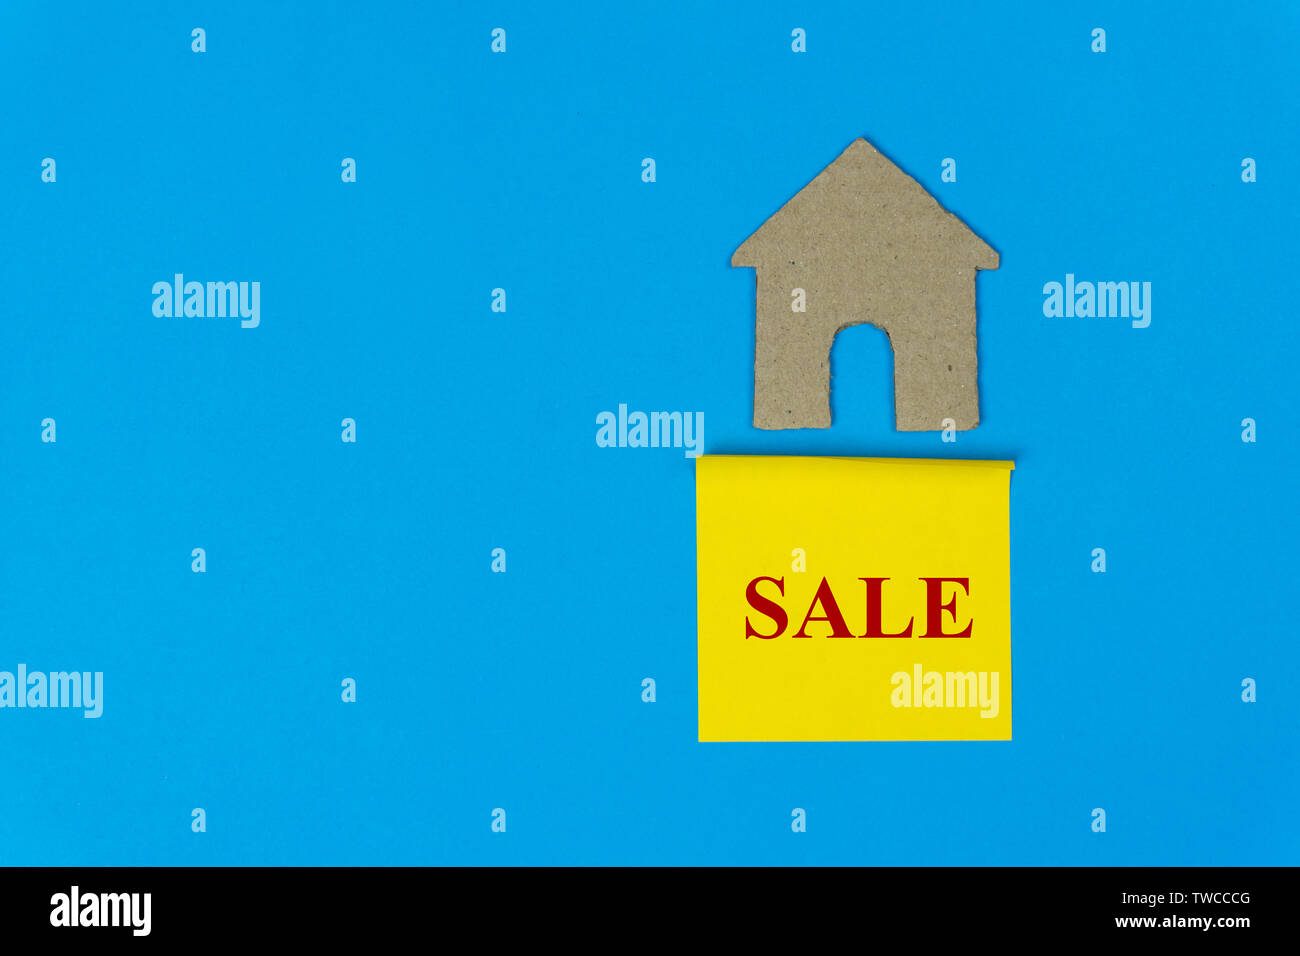 Home for sale. Property sale concept. Real estate sale sign under a small house made by paper cut on blue background. - Stock Image